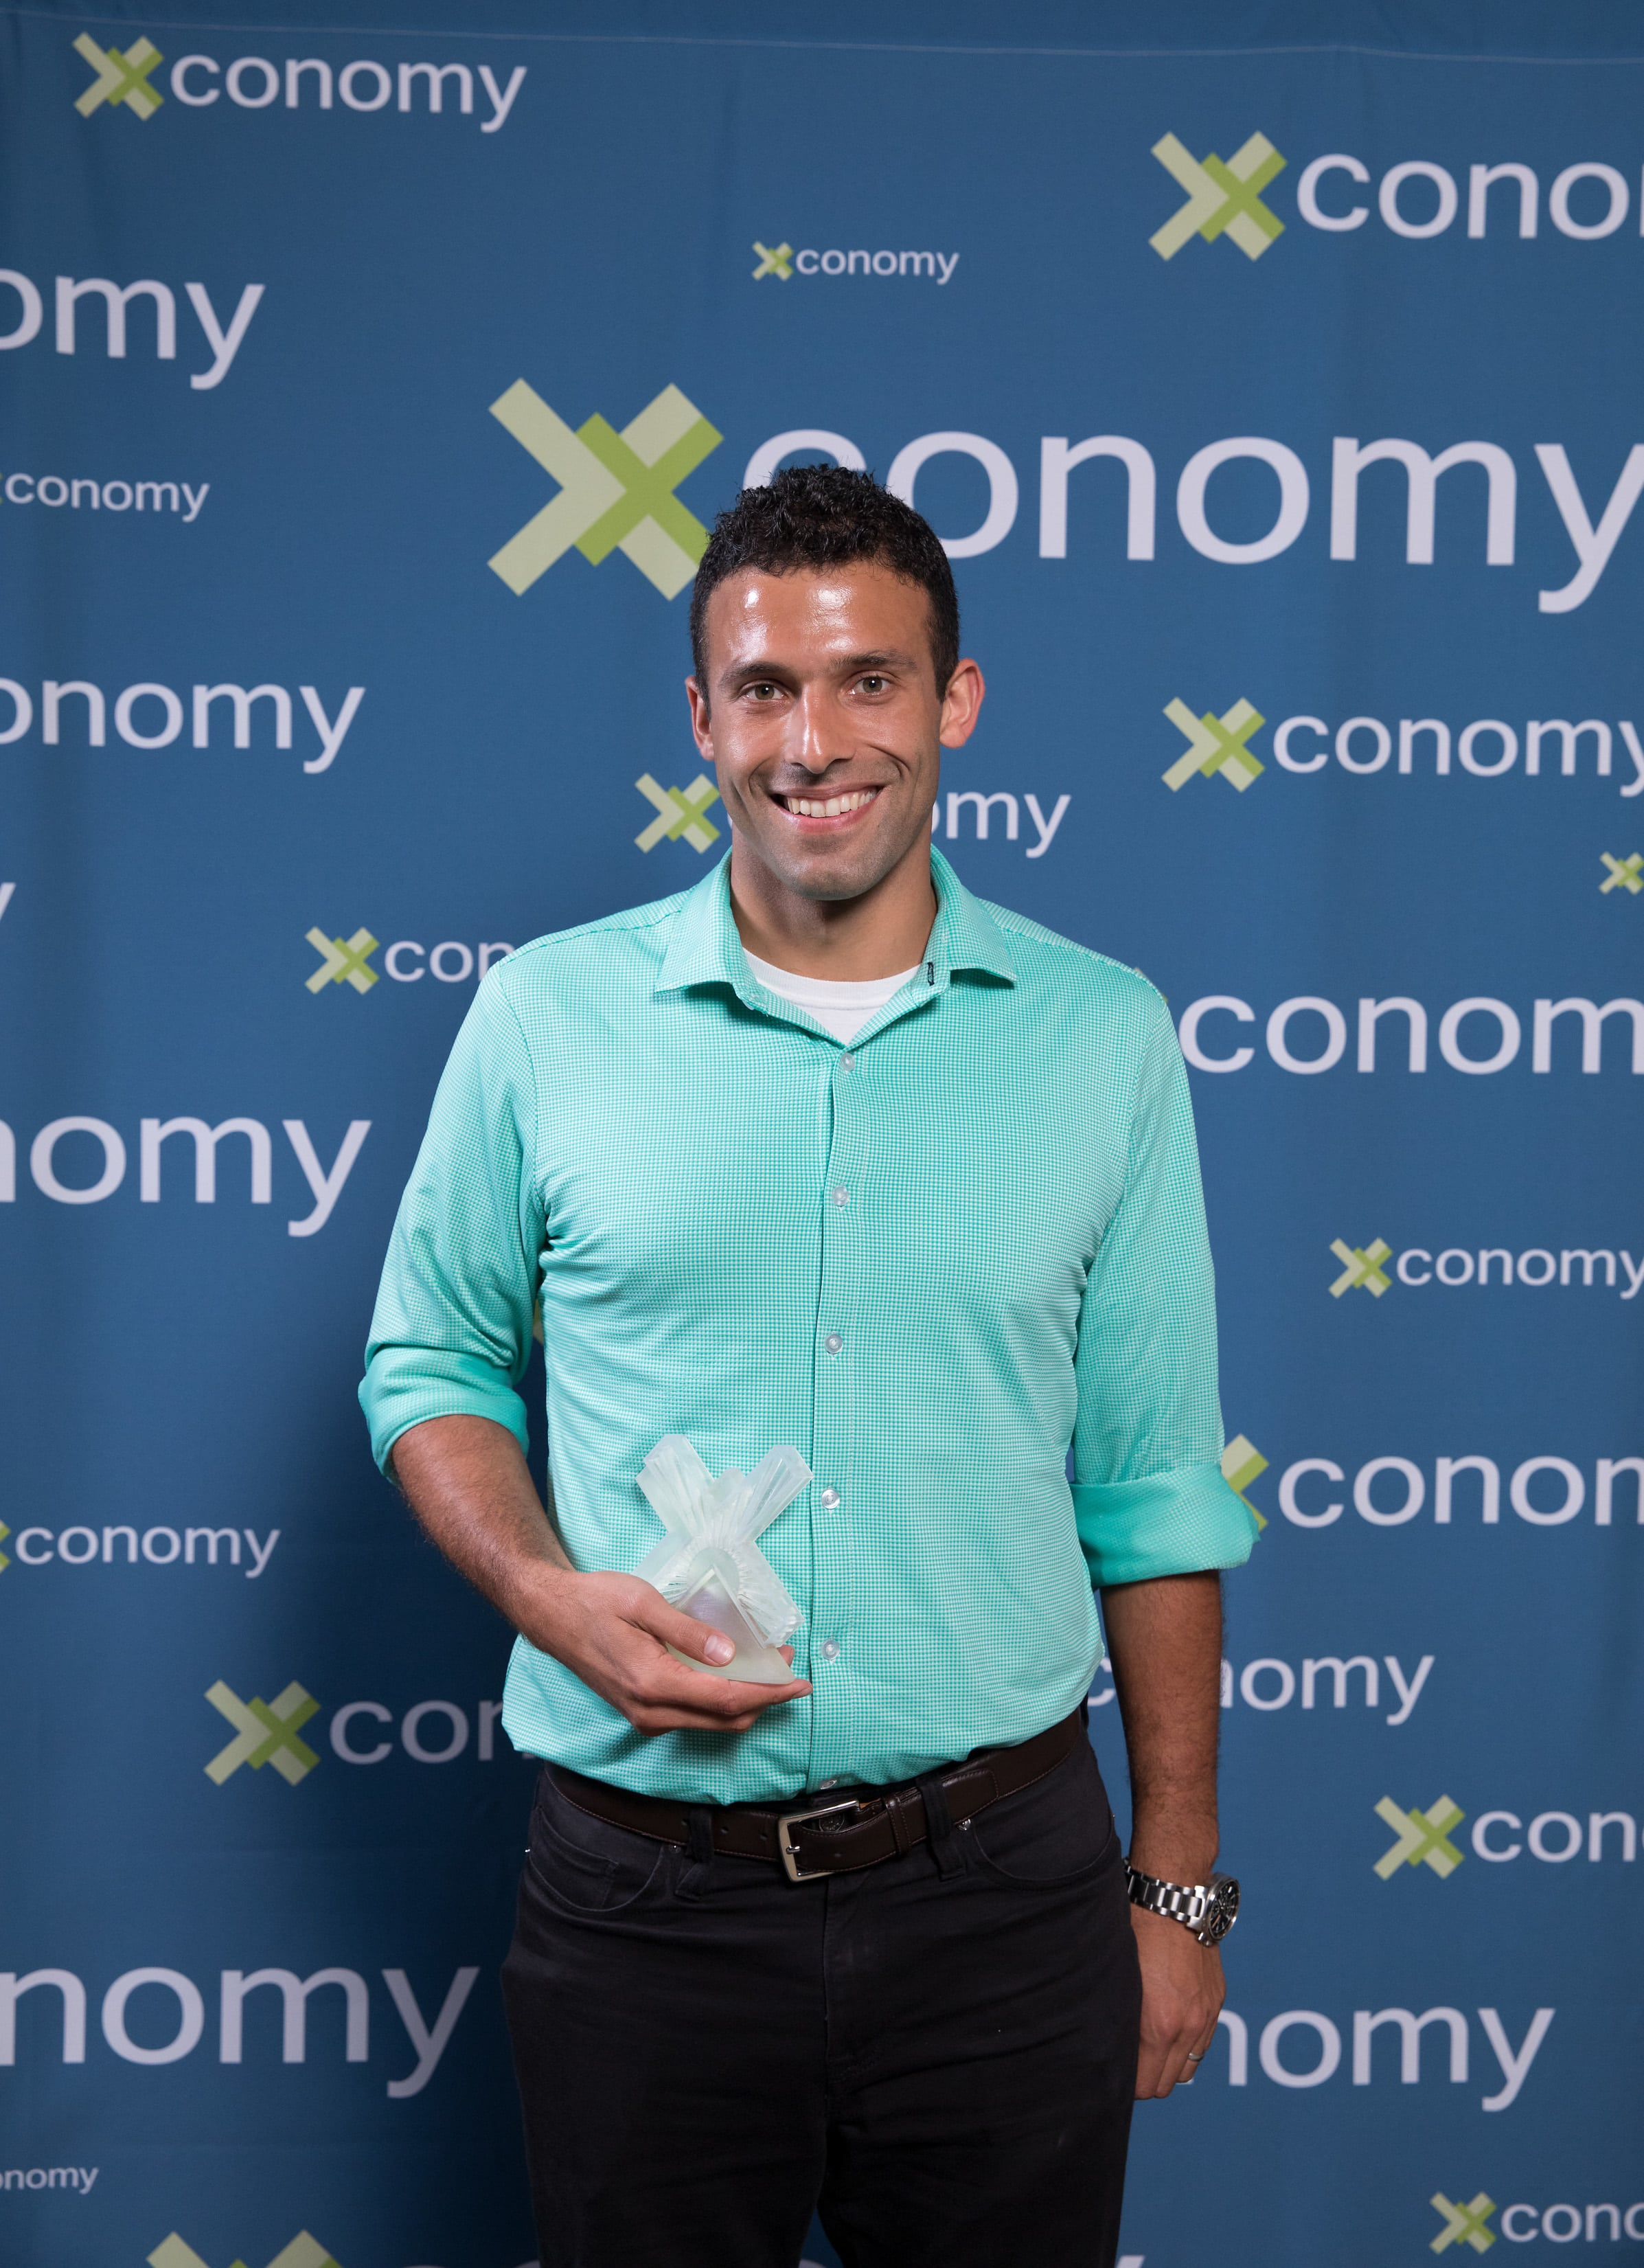 Armon Sharei, Young Innovator Award